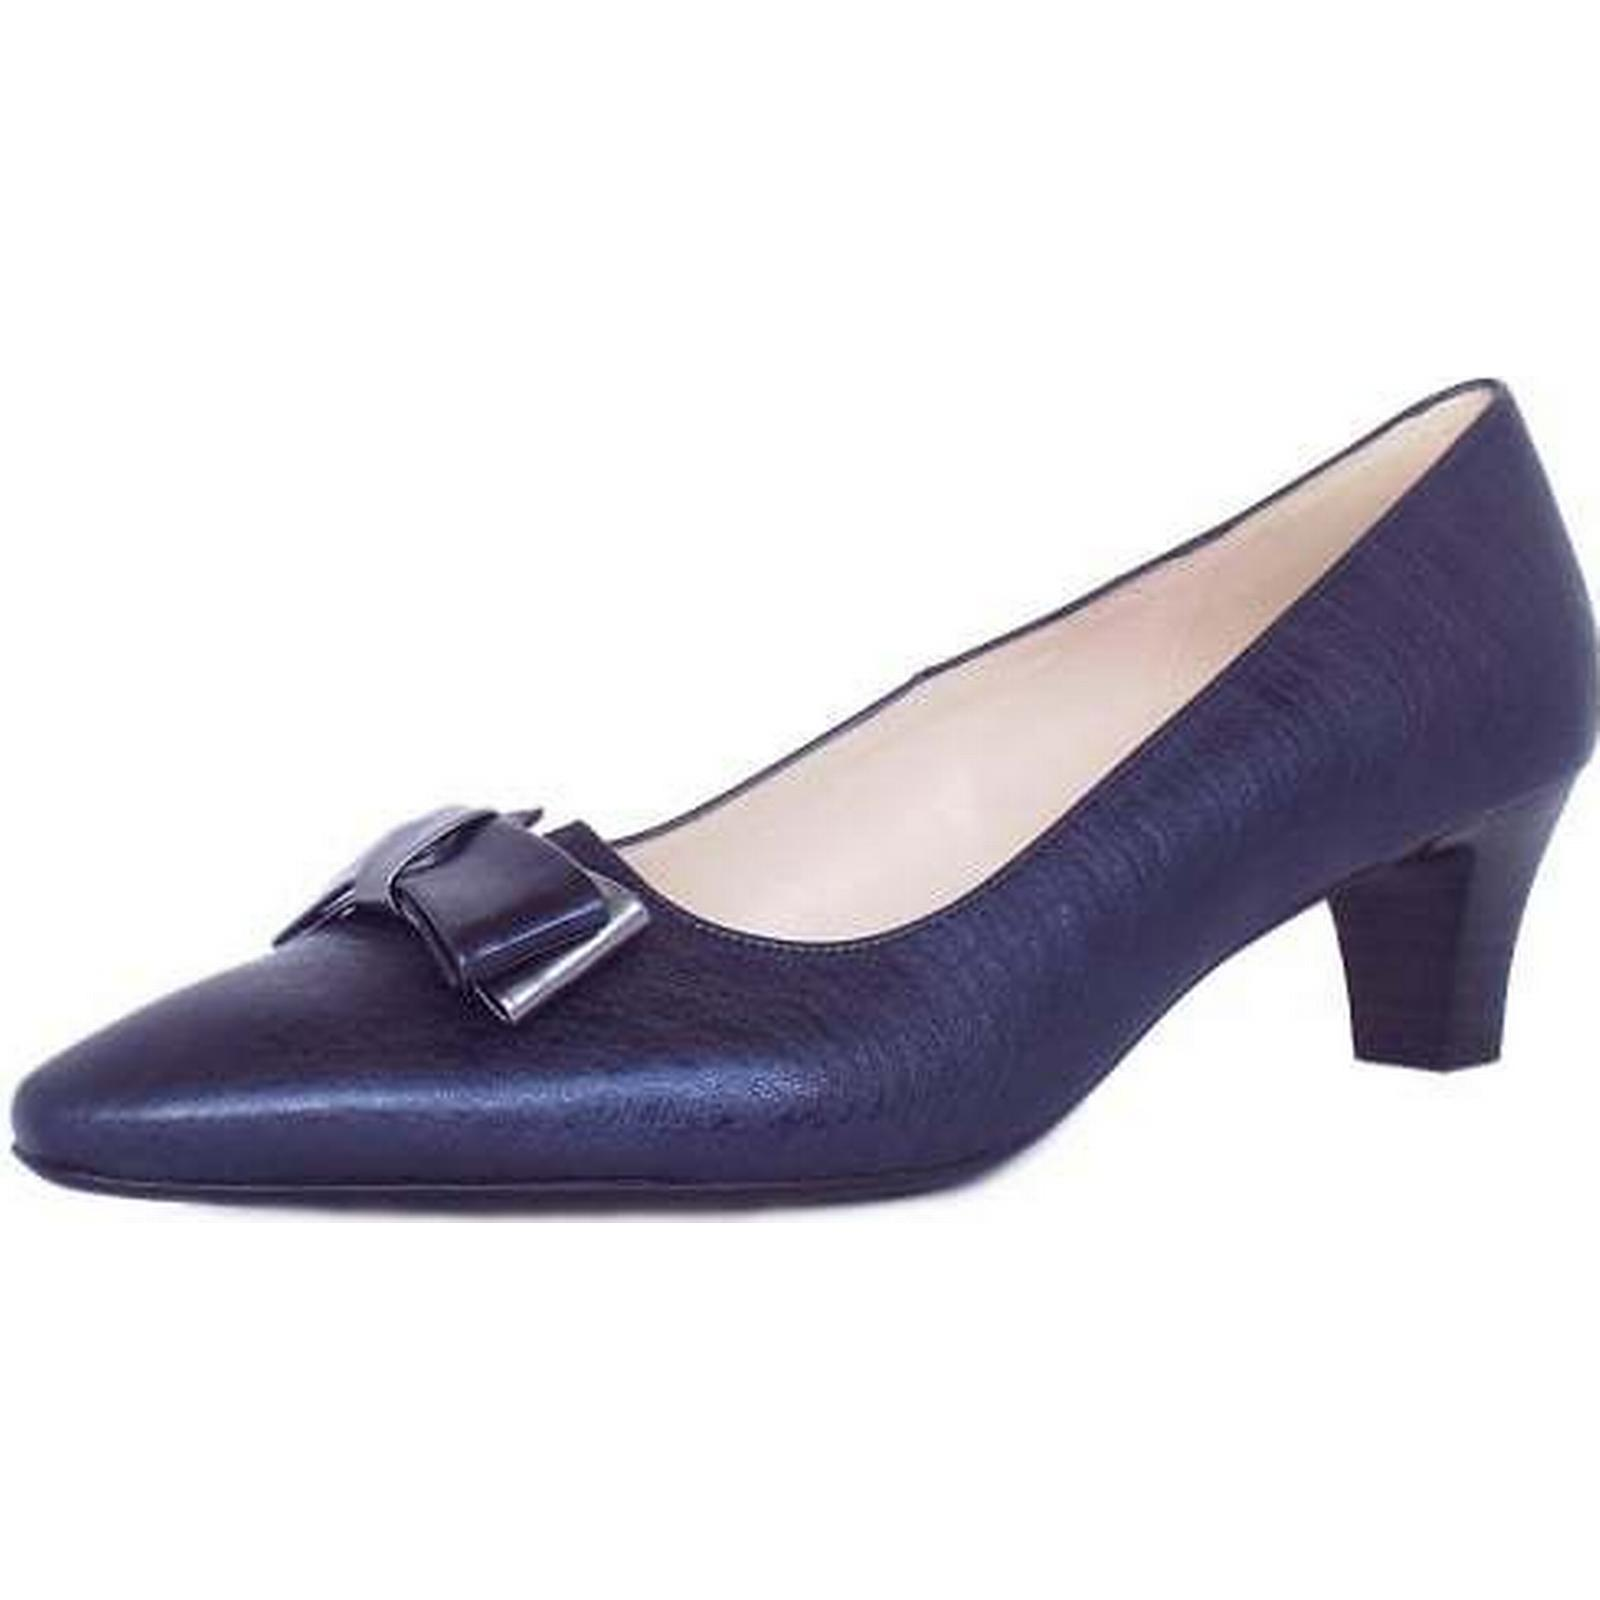 Peter Kaiser EDELTRAUD PETER KAISER LADIES SHOES 8 Size: 8 SHOES f8ccae